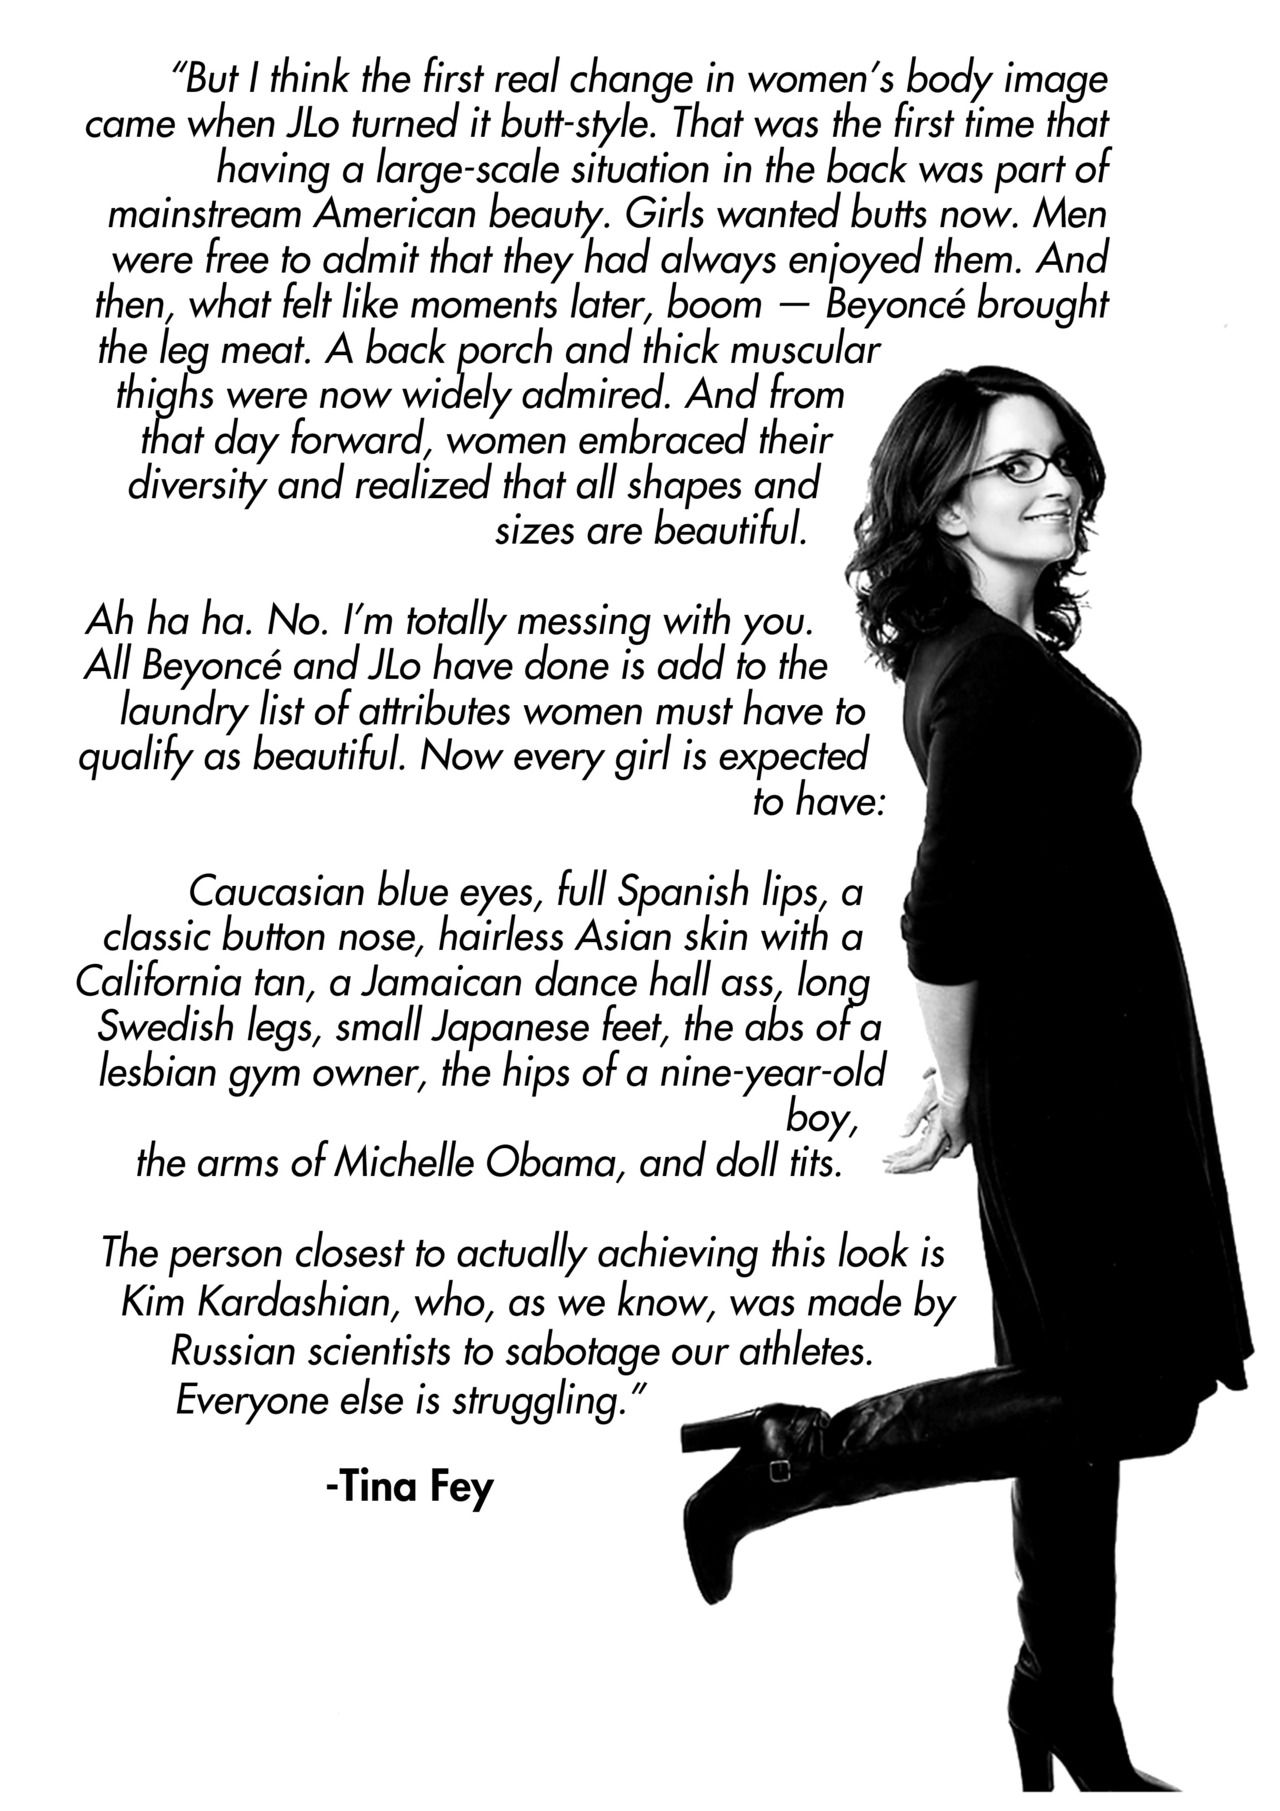 this is so good. I love Tina Fey